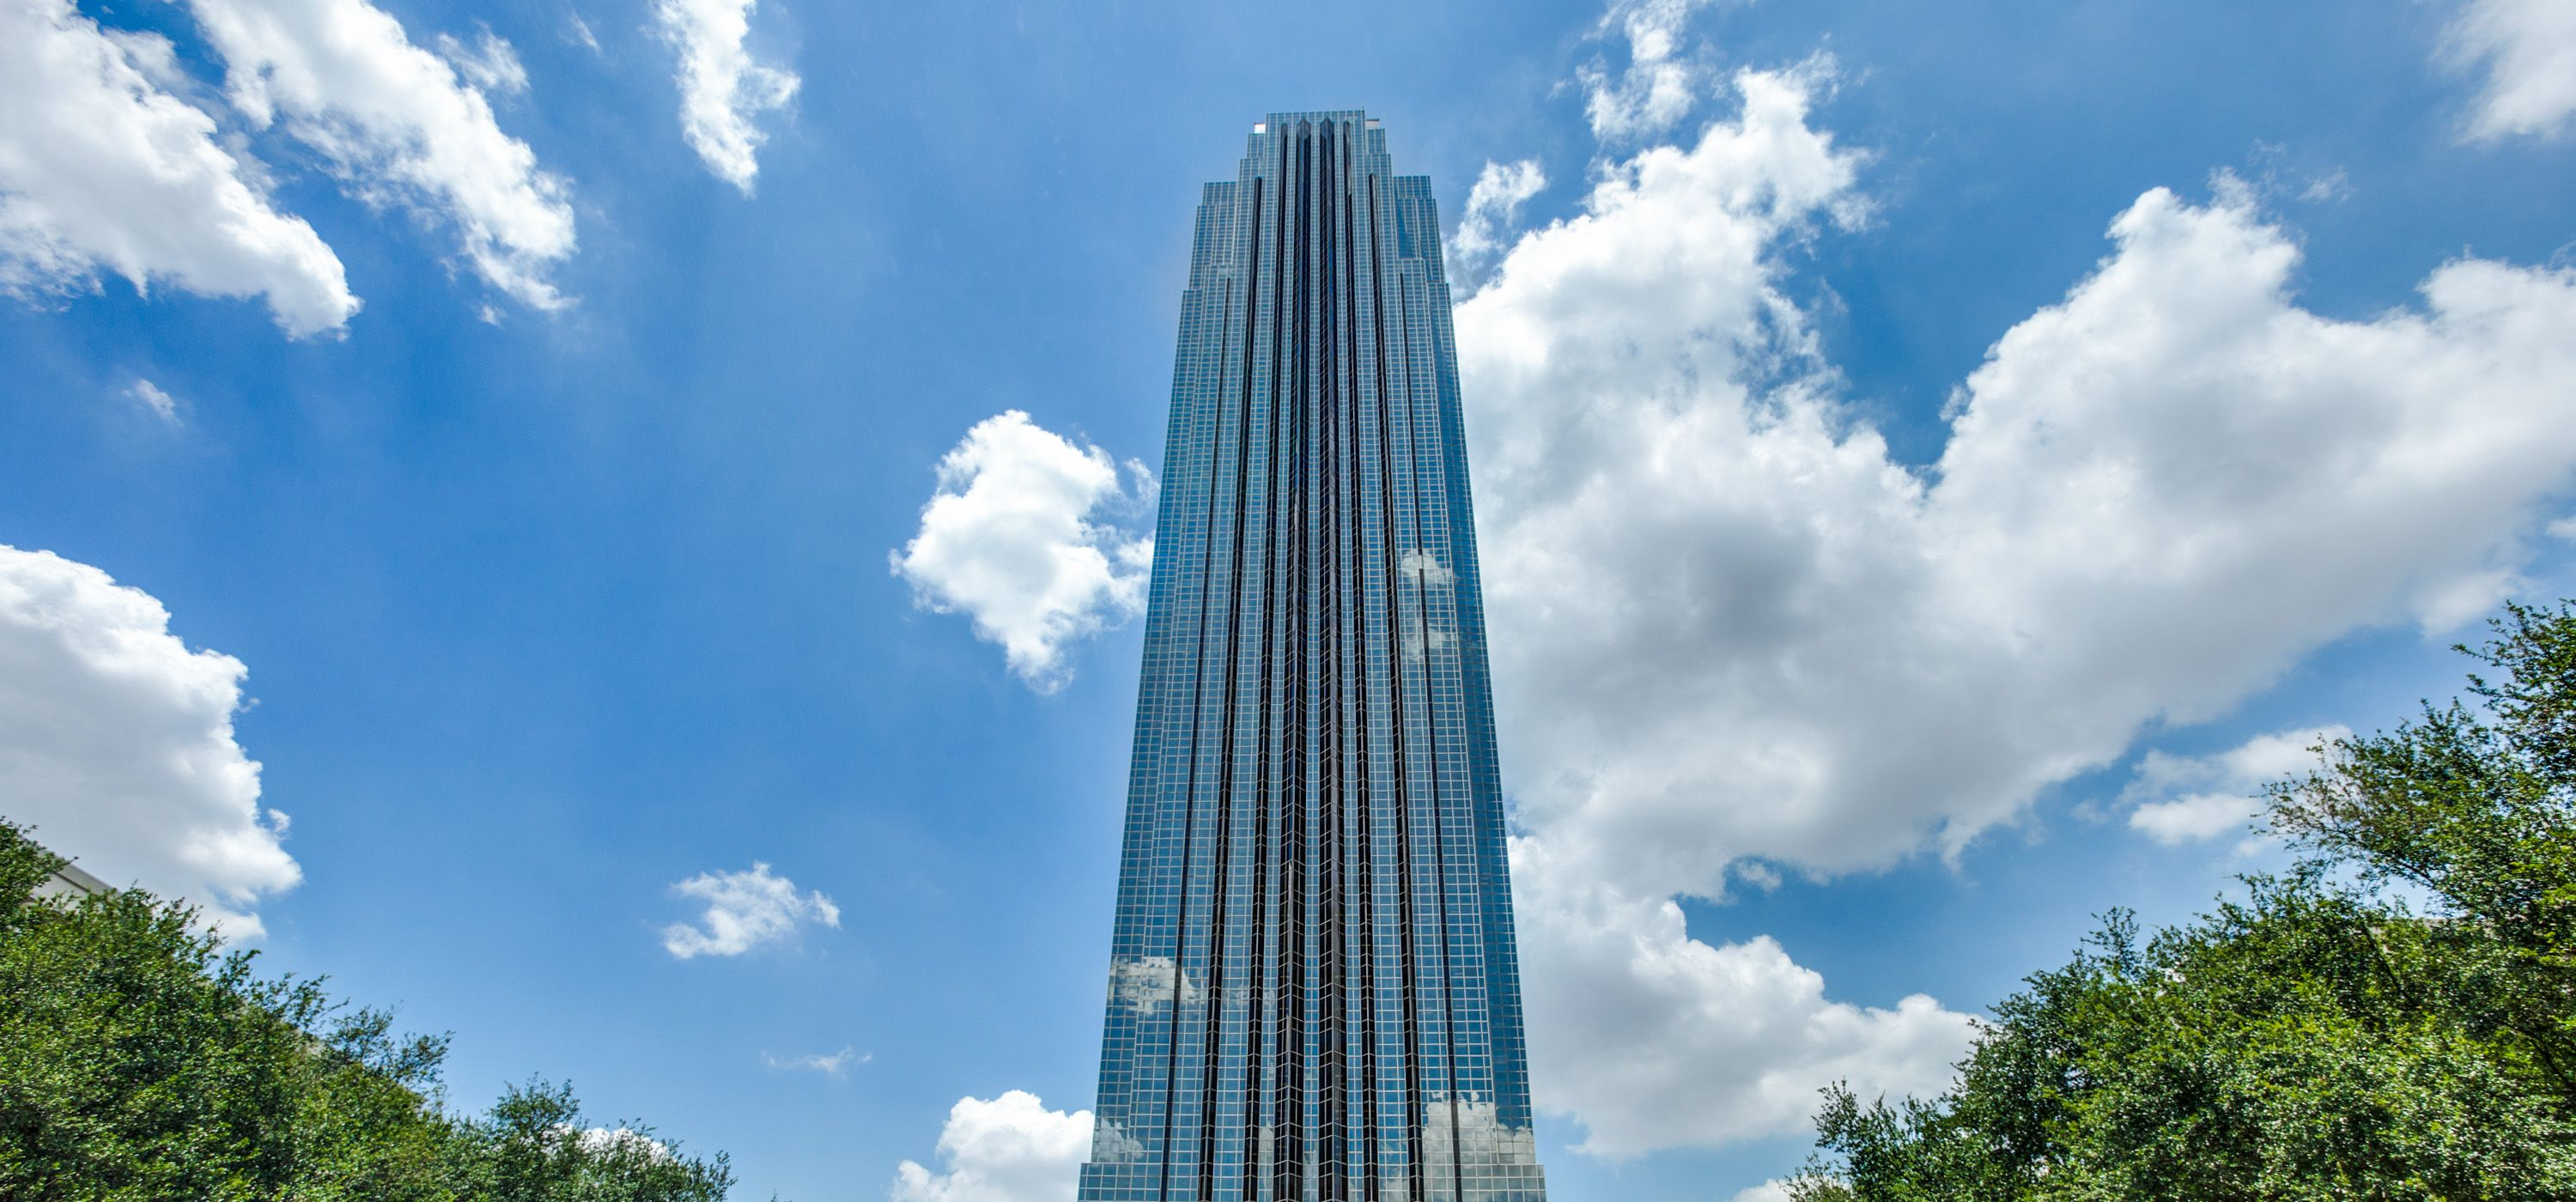 houston_-williams-tower-houston-building.jpg